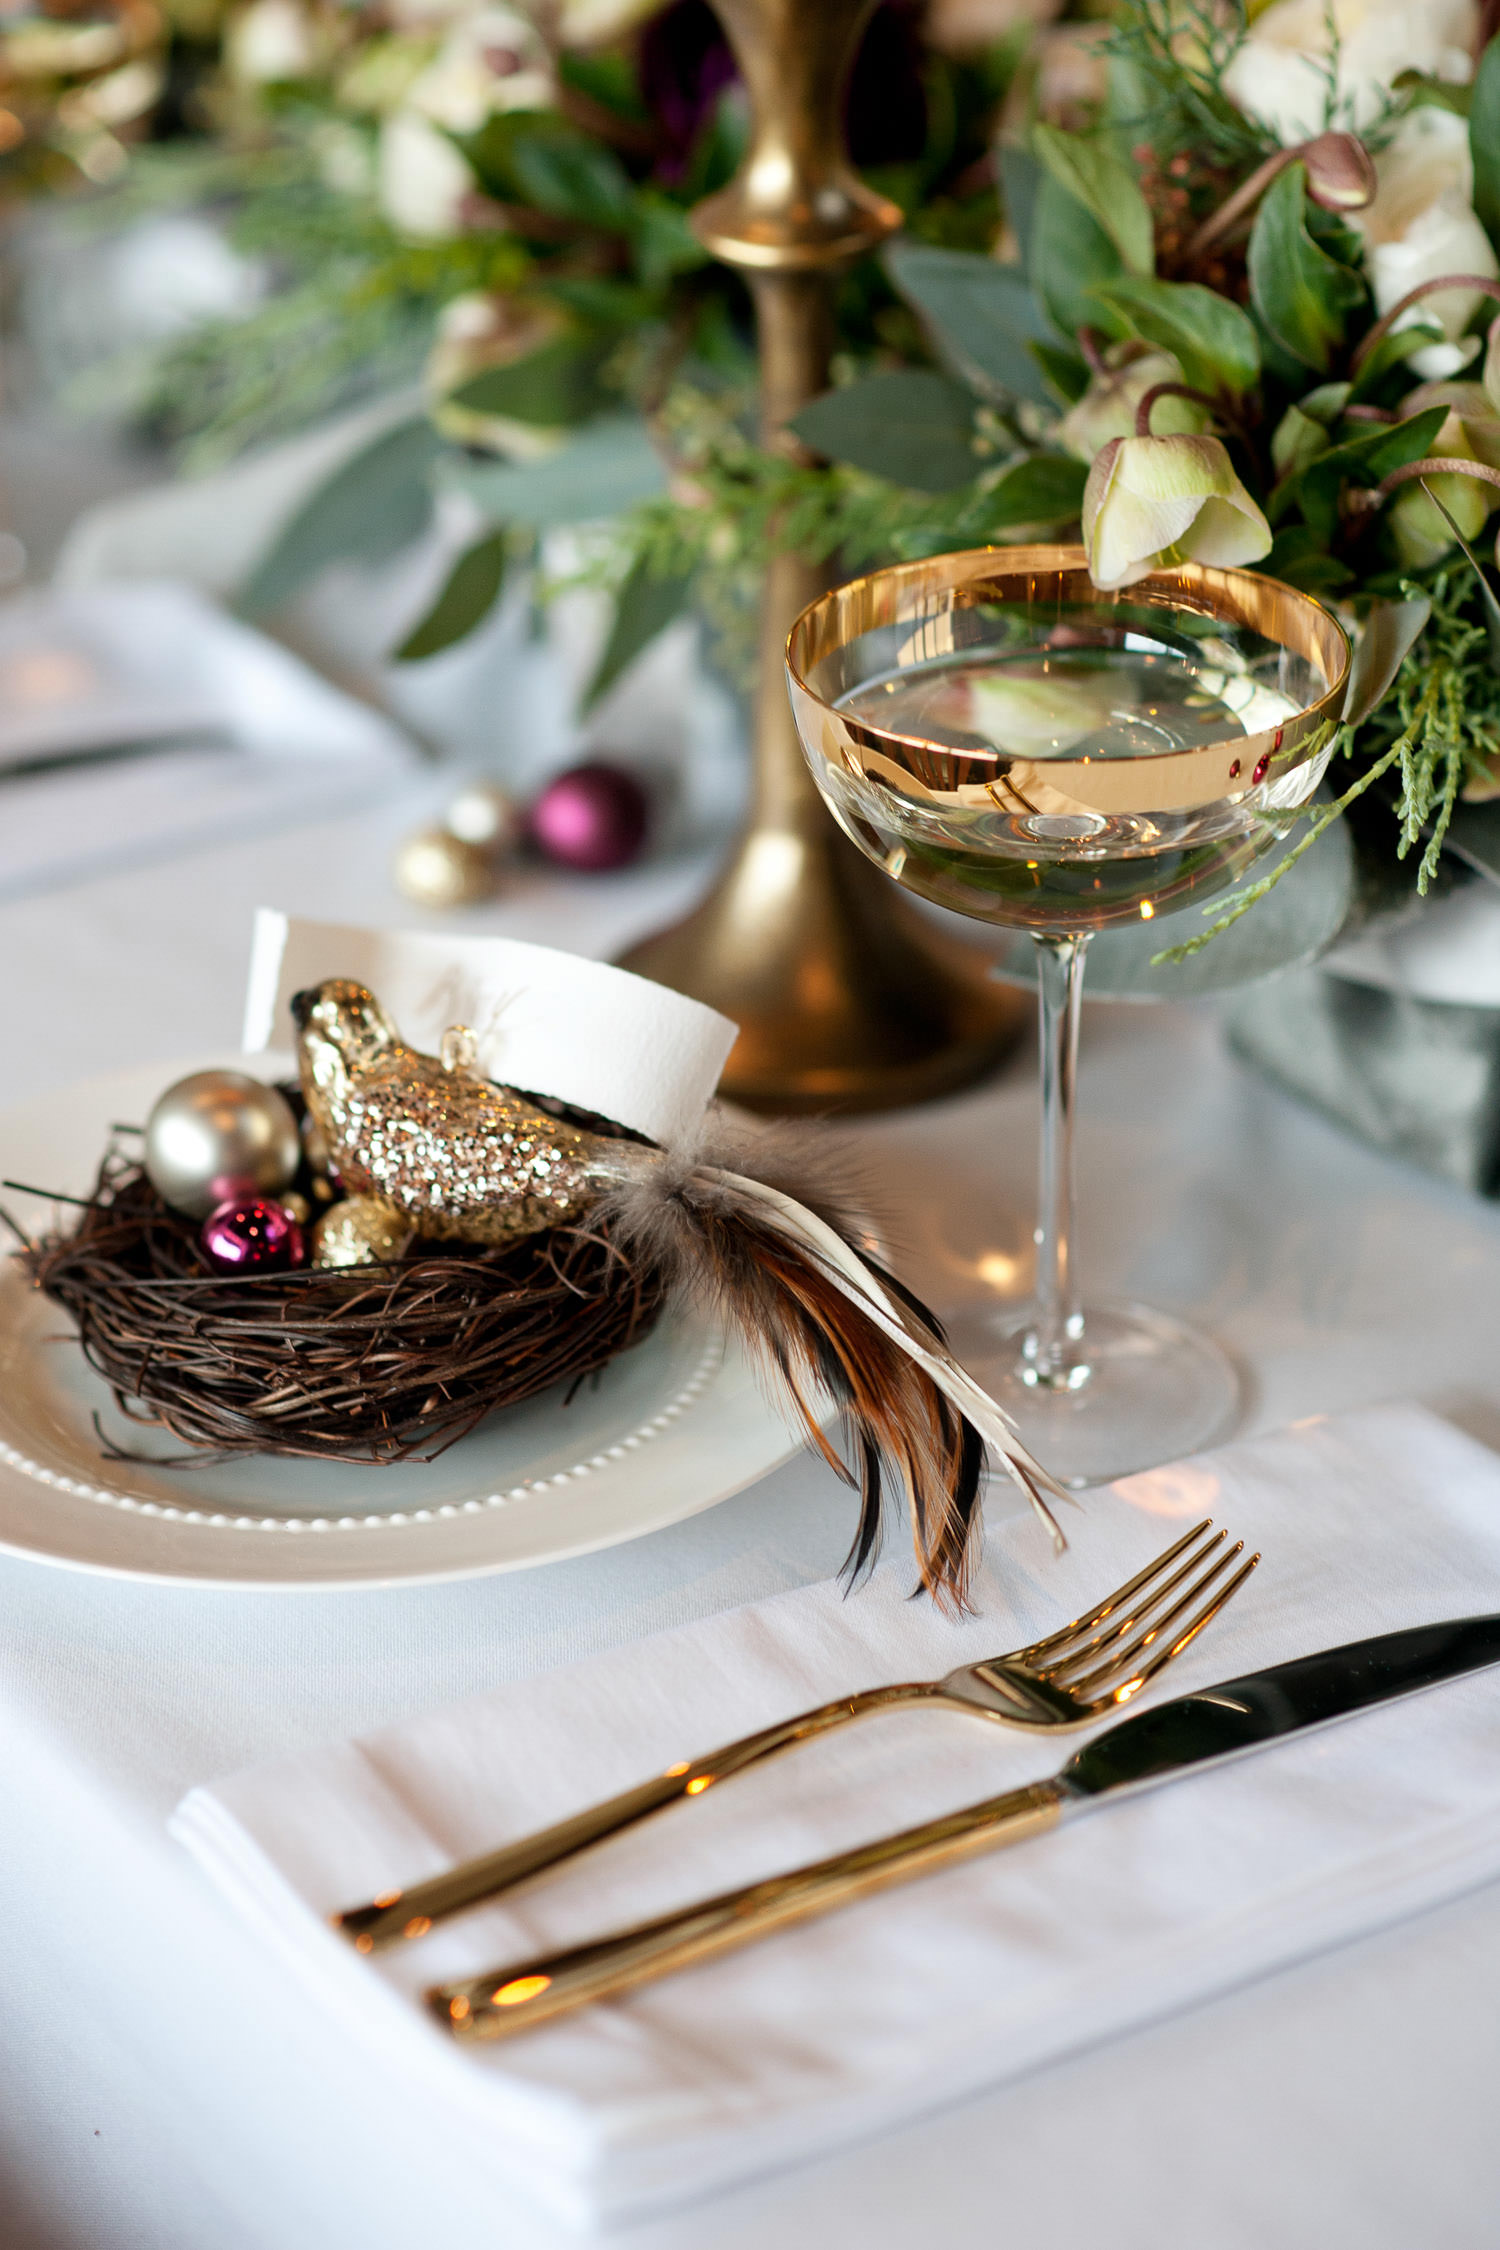 bird's nest at a place setting for a December wedding captured by Tara Whittaker Photography